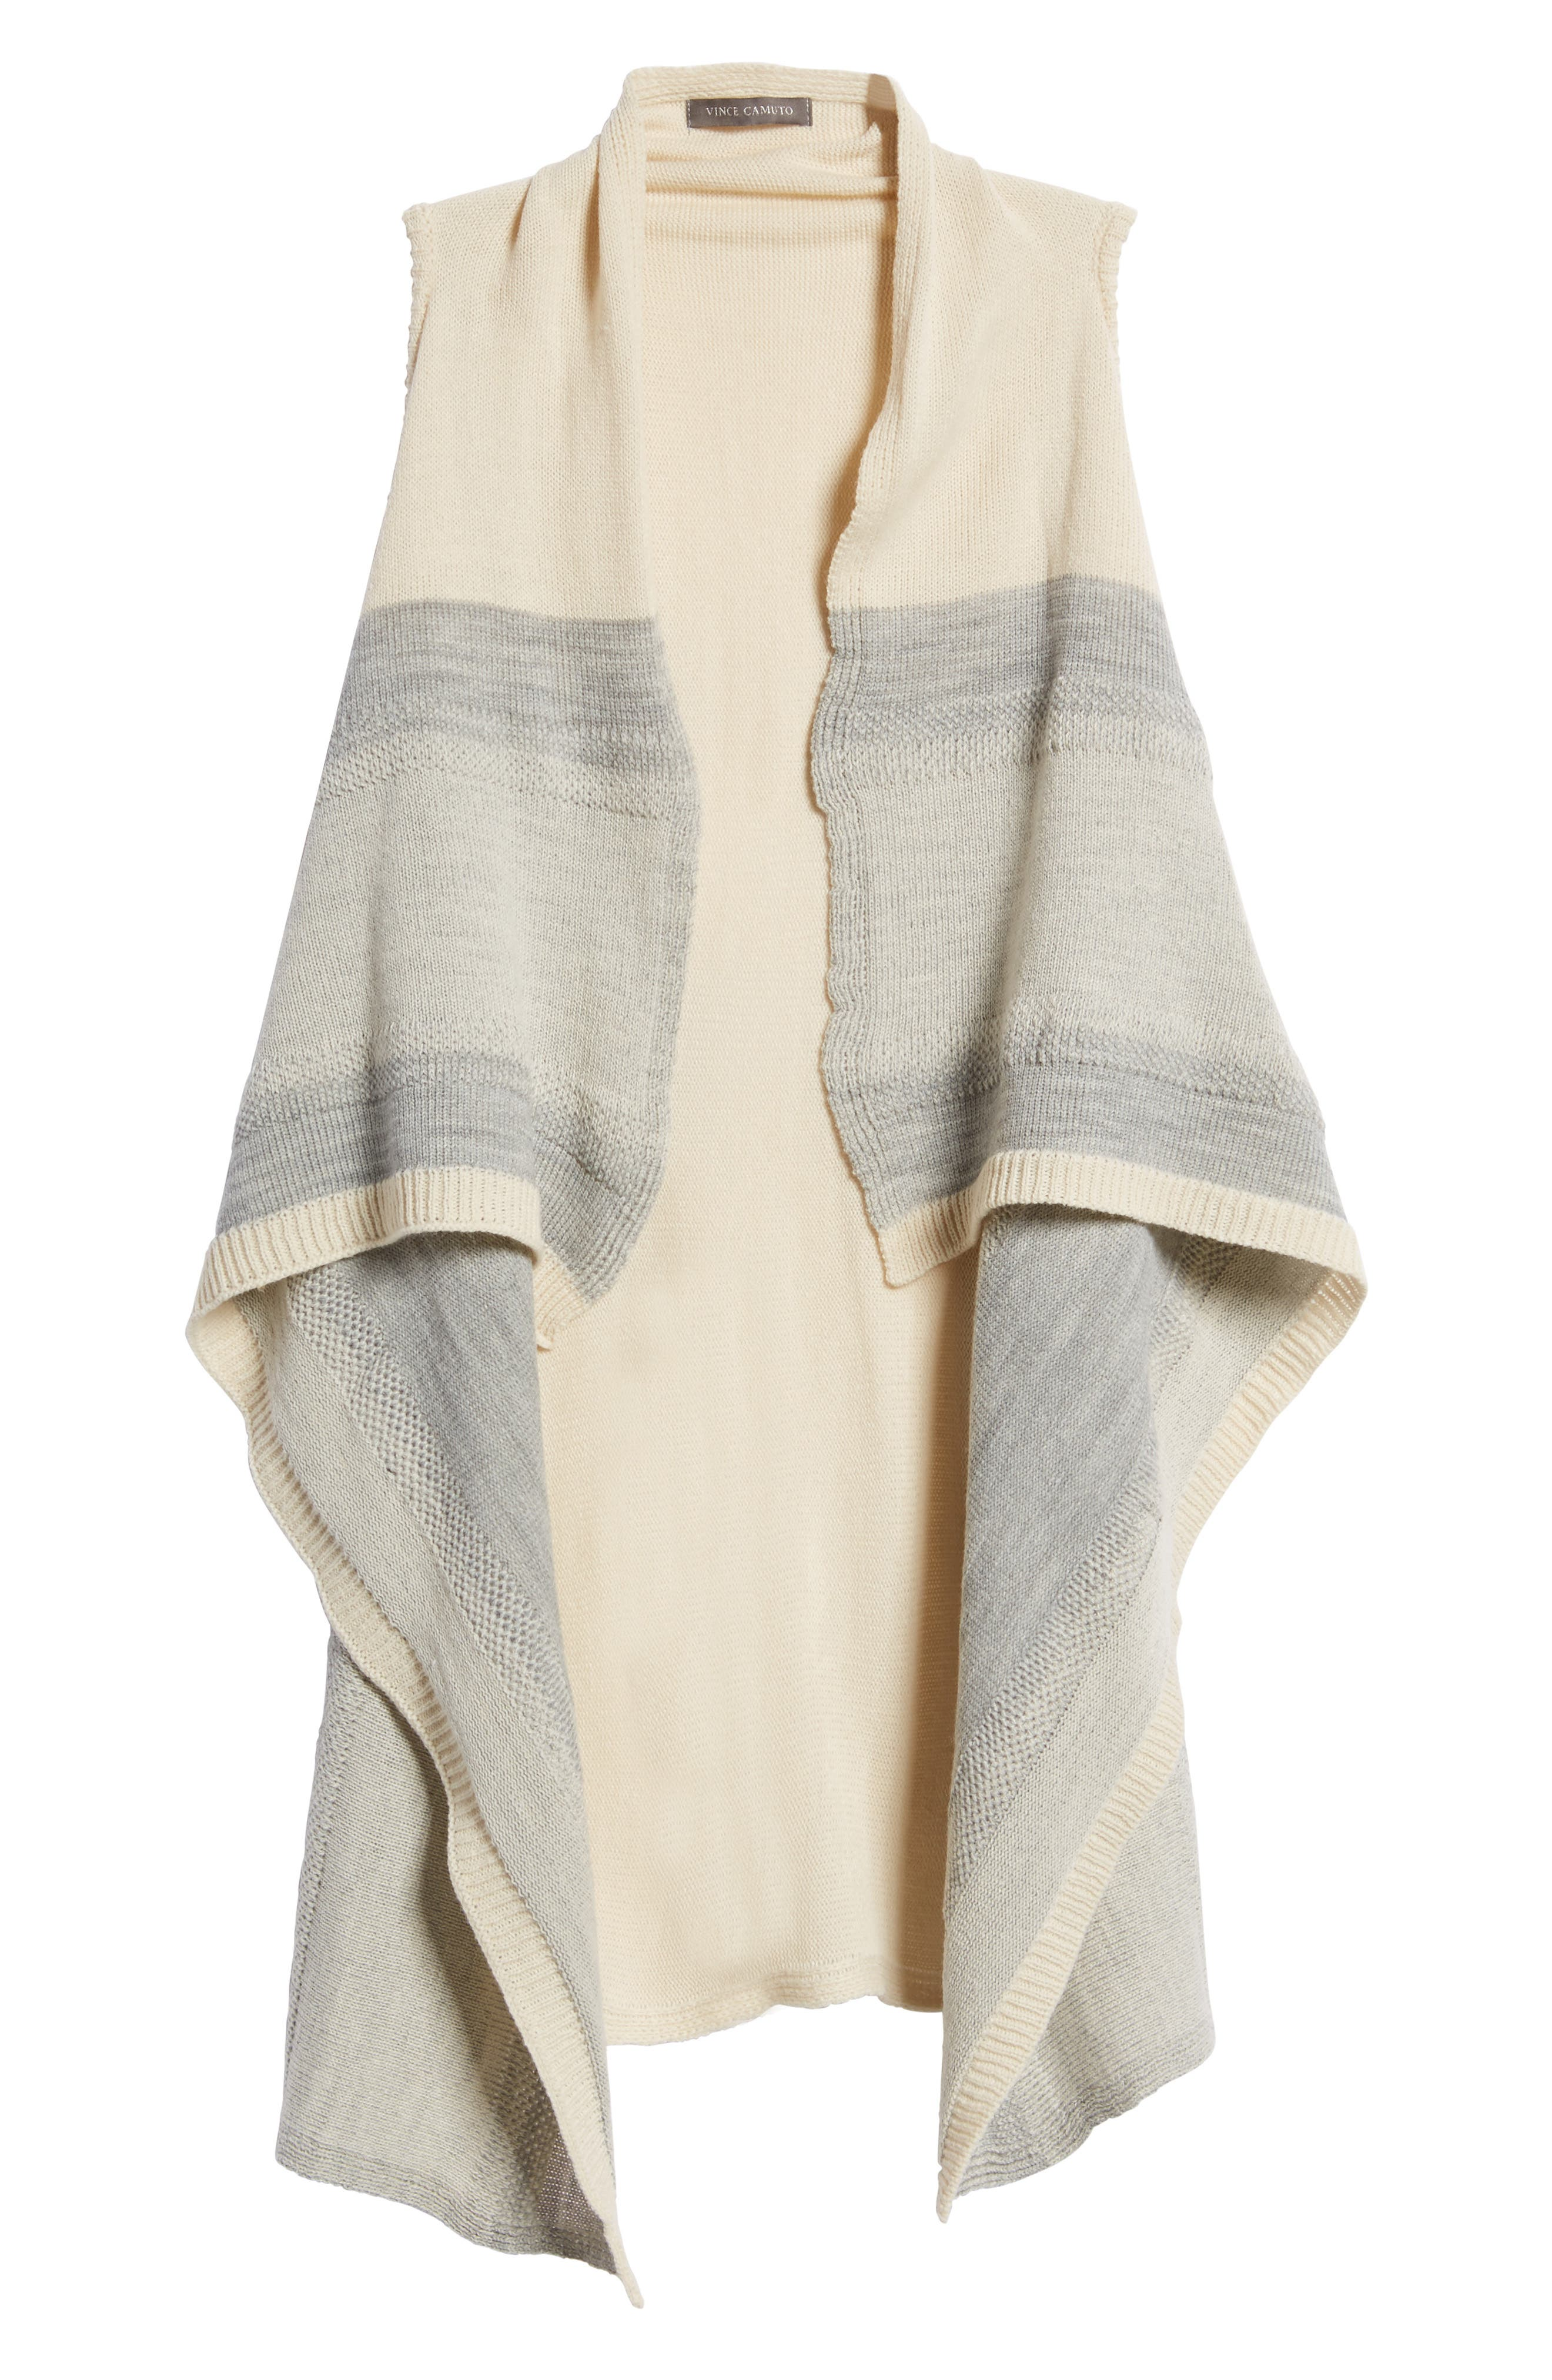 Faded Stripes Knit Vest,                             Alternate thumbnail 5, color,                             Off White